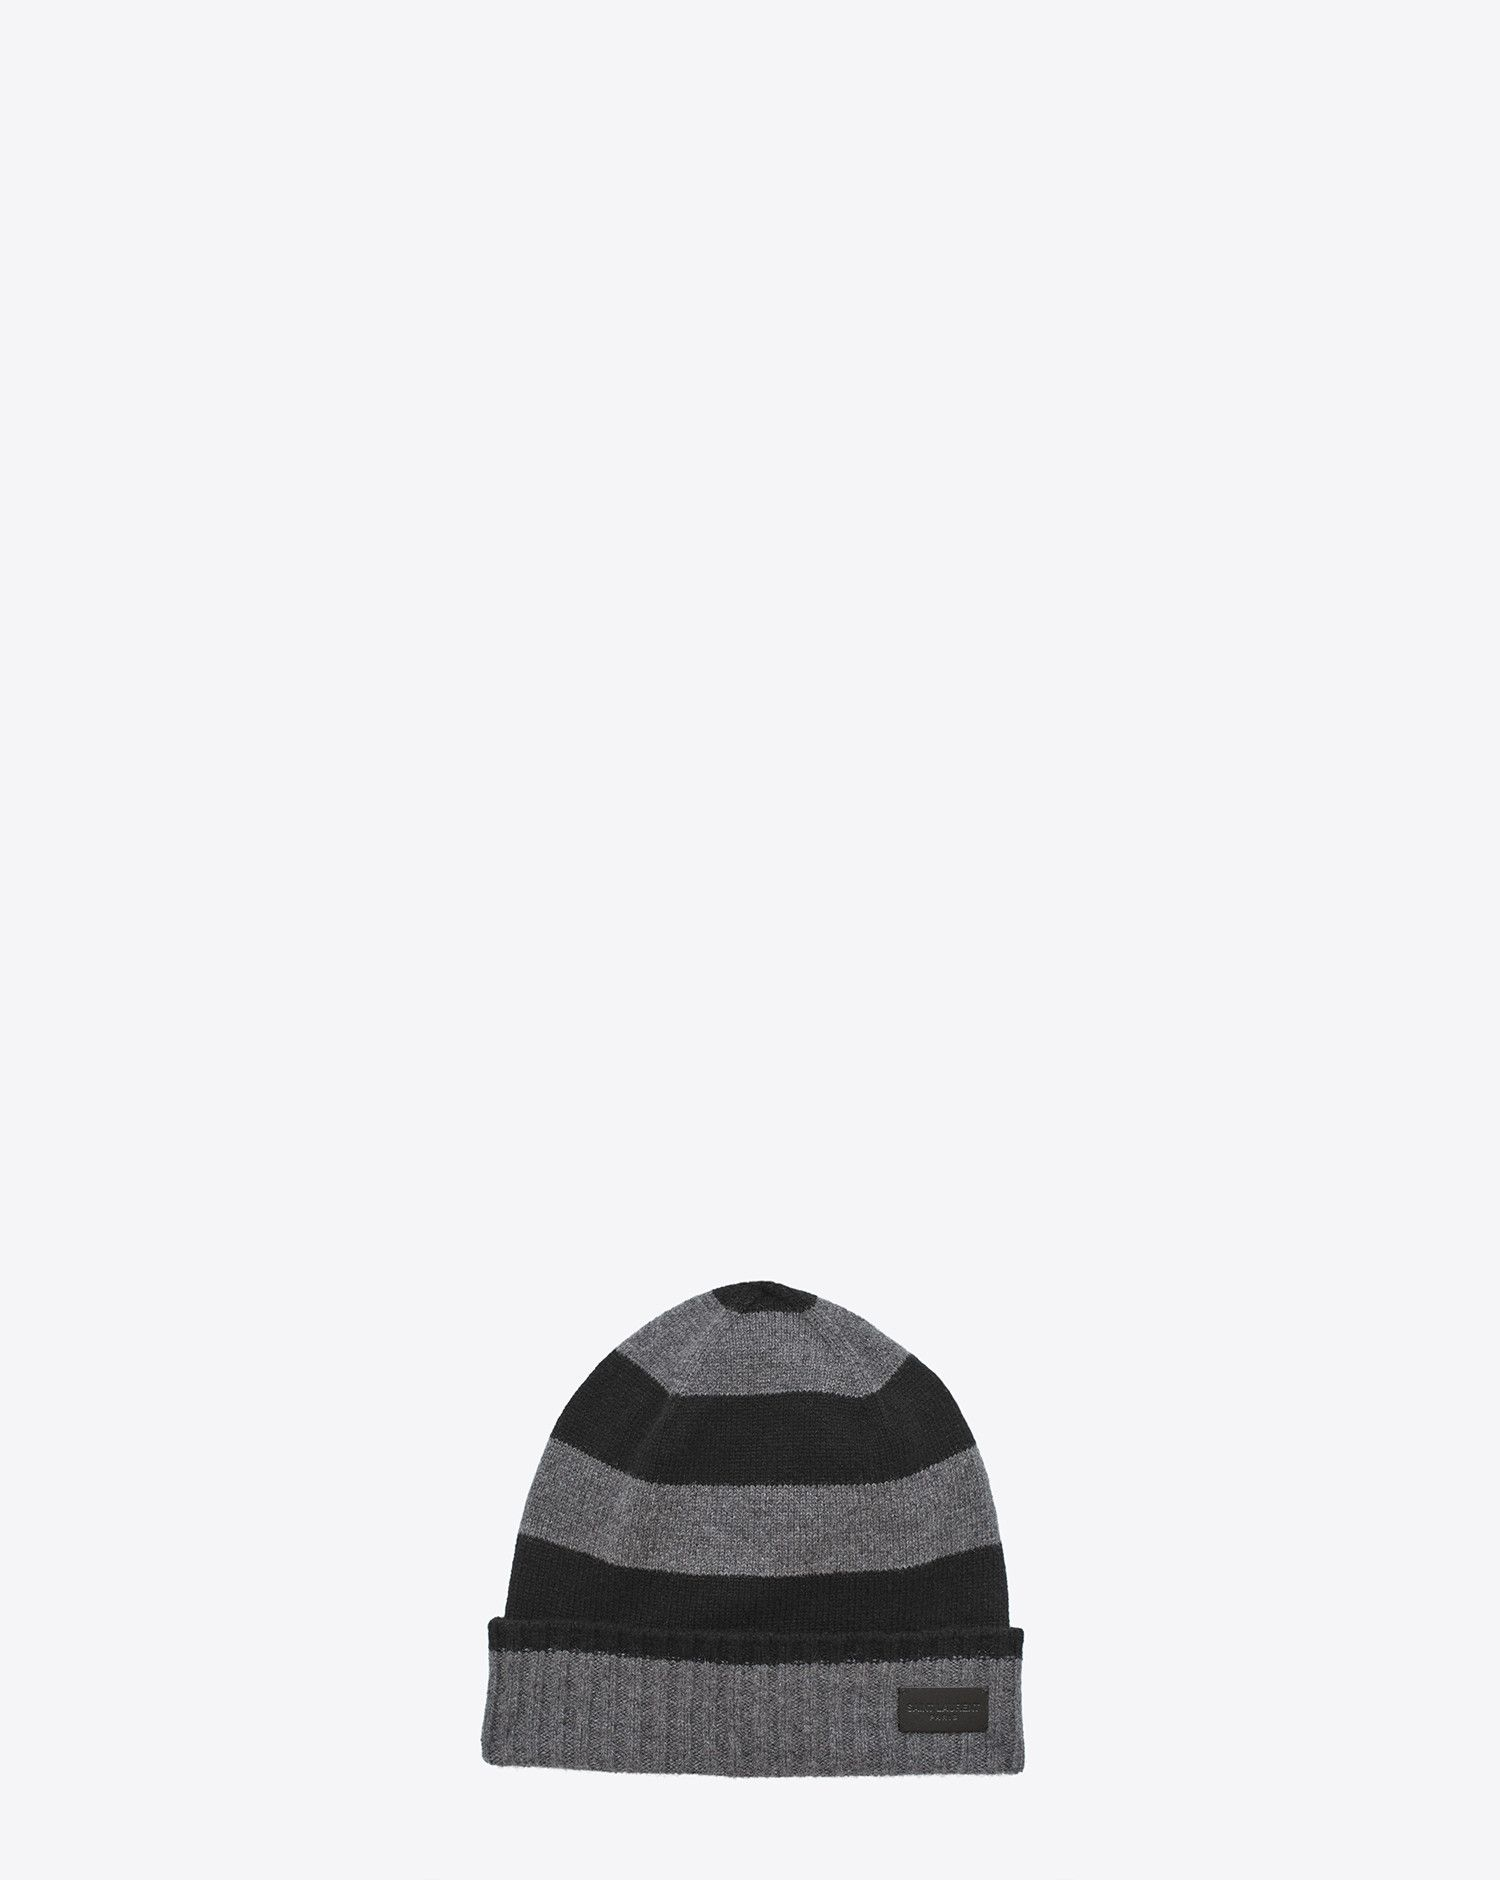 5717b6b04c6 Knit Hat in Black and Grey Collegiate Striped Cashmere   300.00 SAINT  LAURENT knit hat with ribbed fold-over brim.